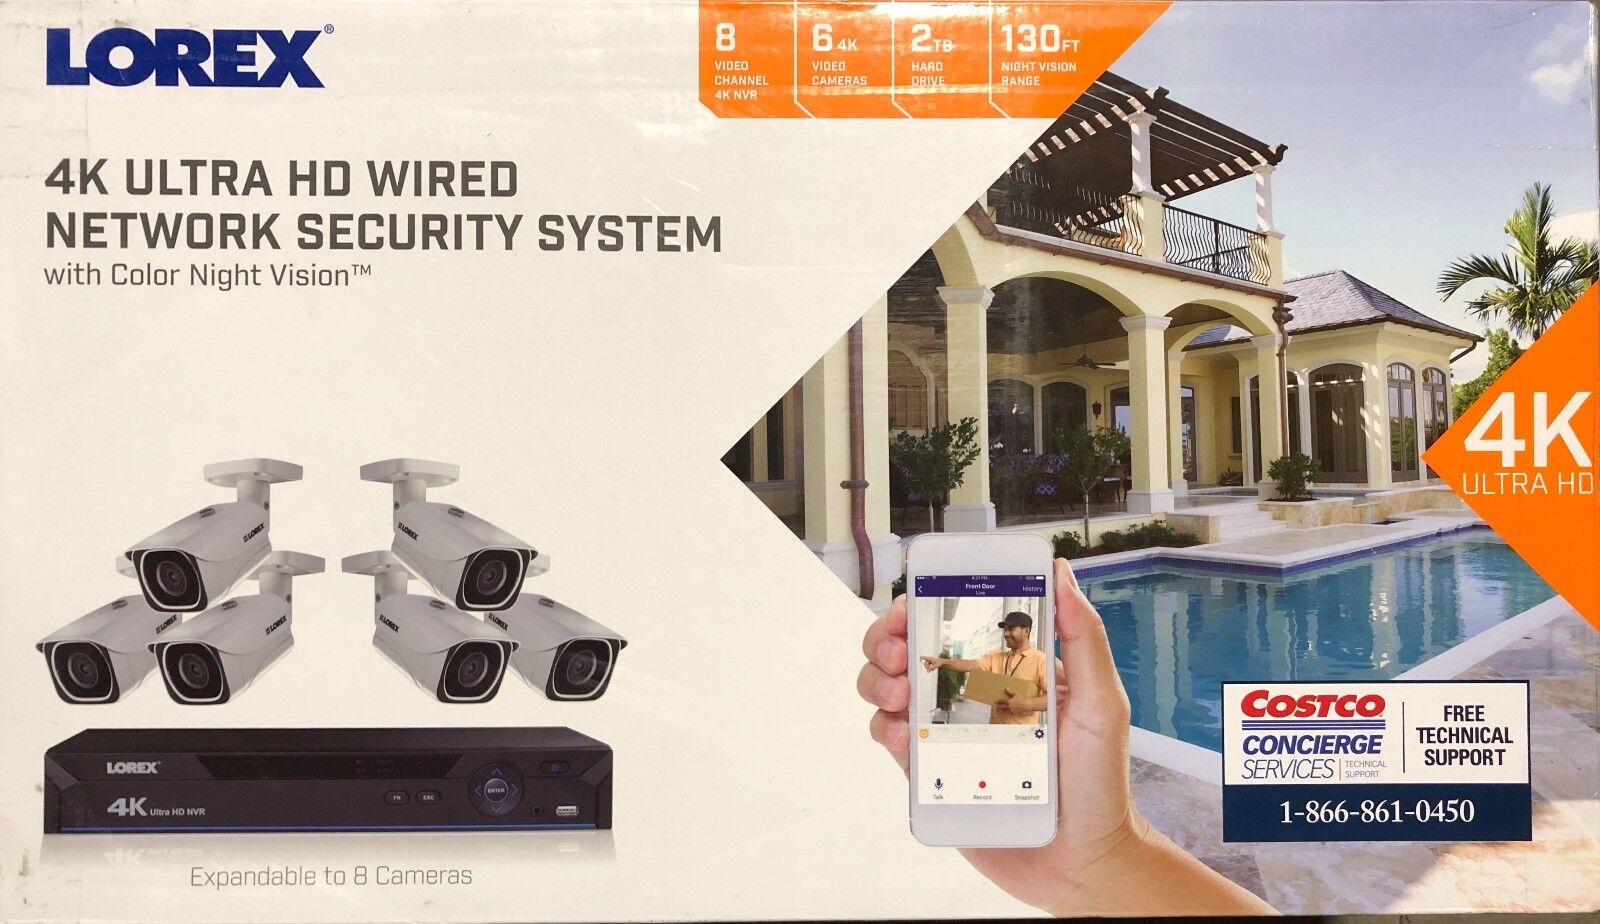 Lorex 8 channel 8 MP w/2TB HDD UHD 4K home security system 6- 4K Cameras.NEW